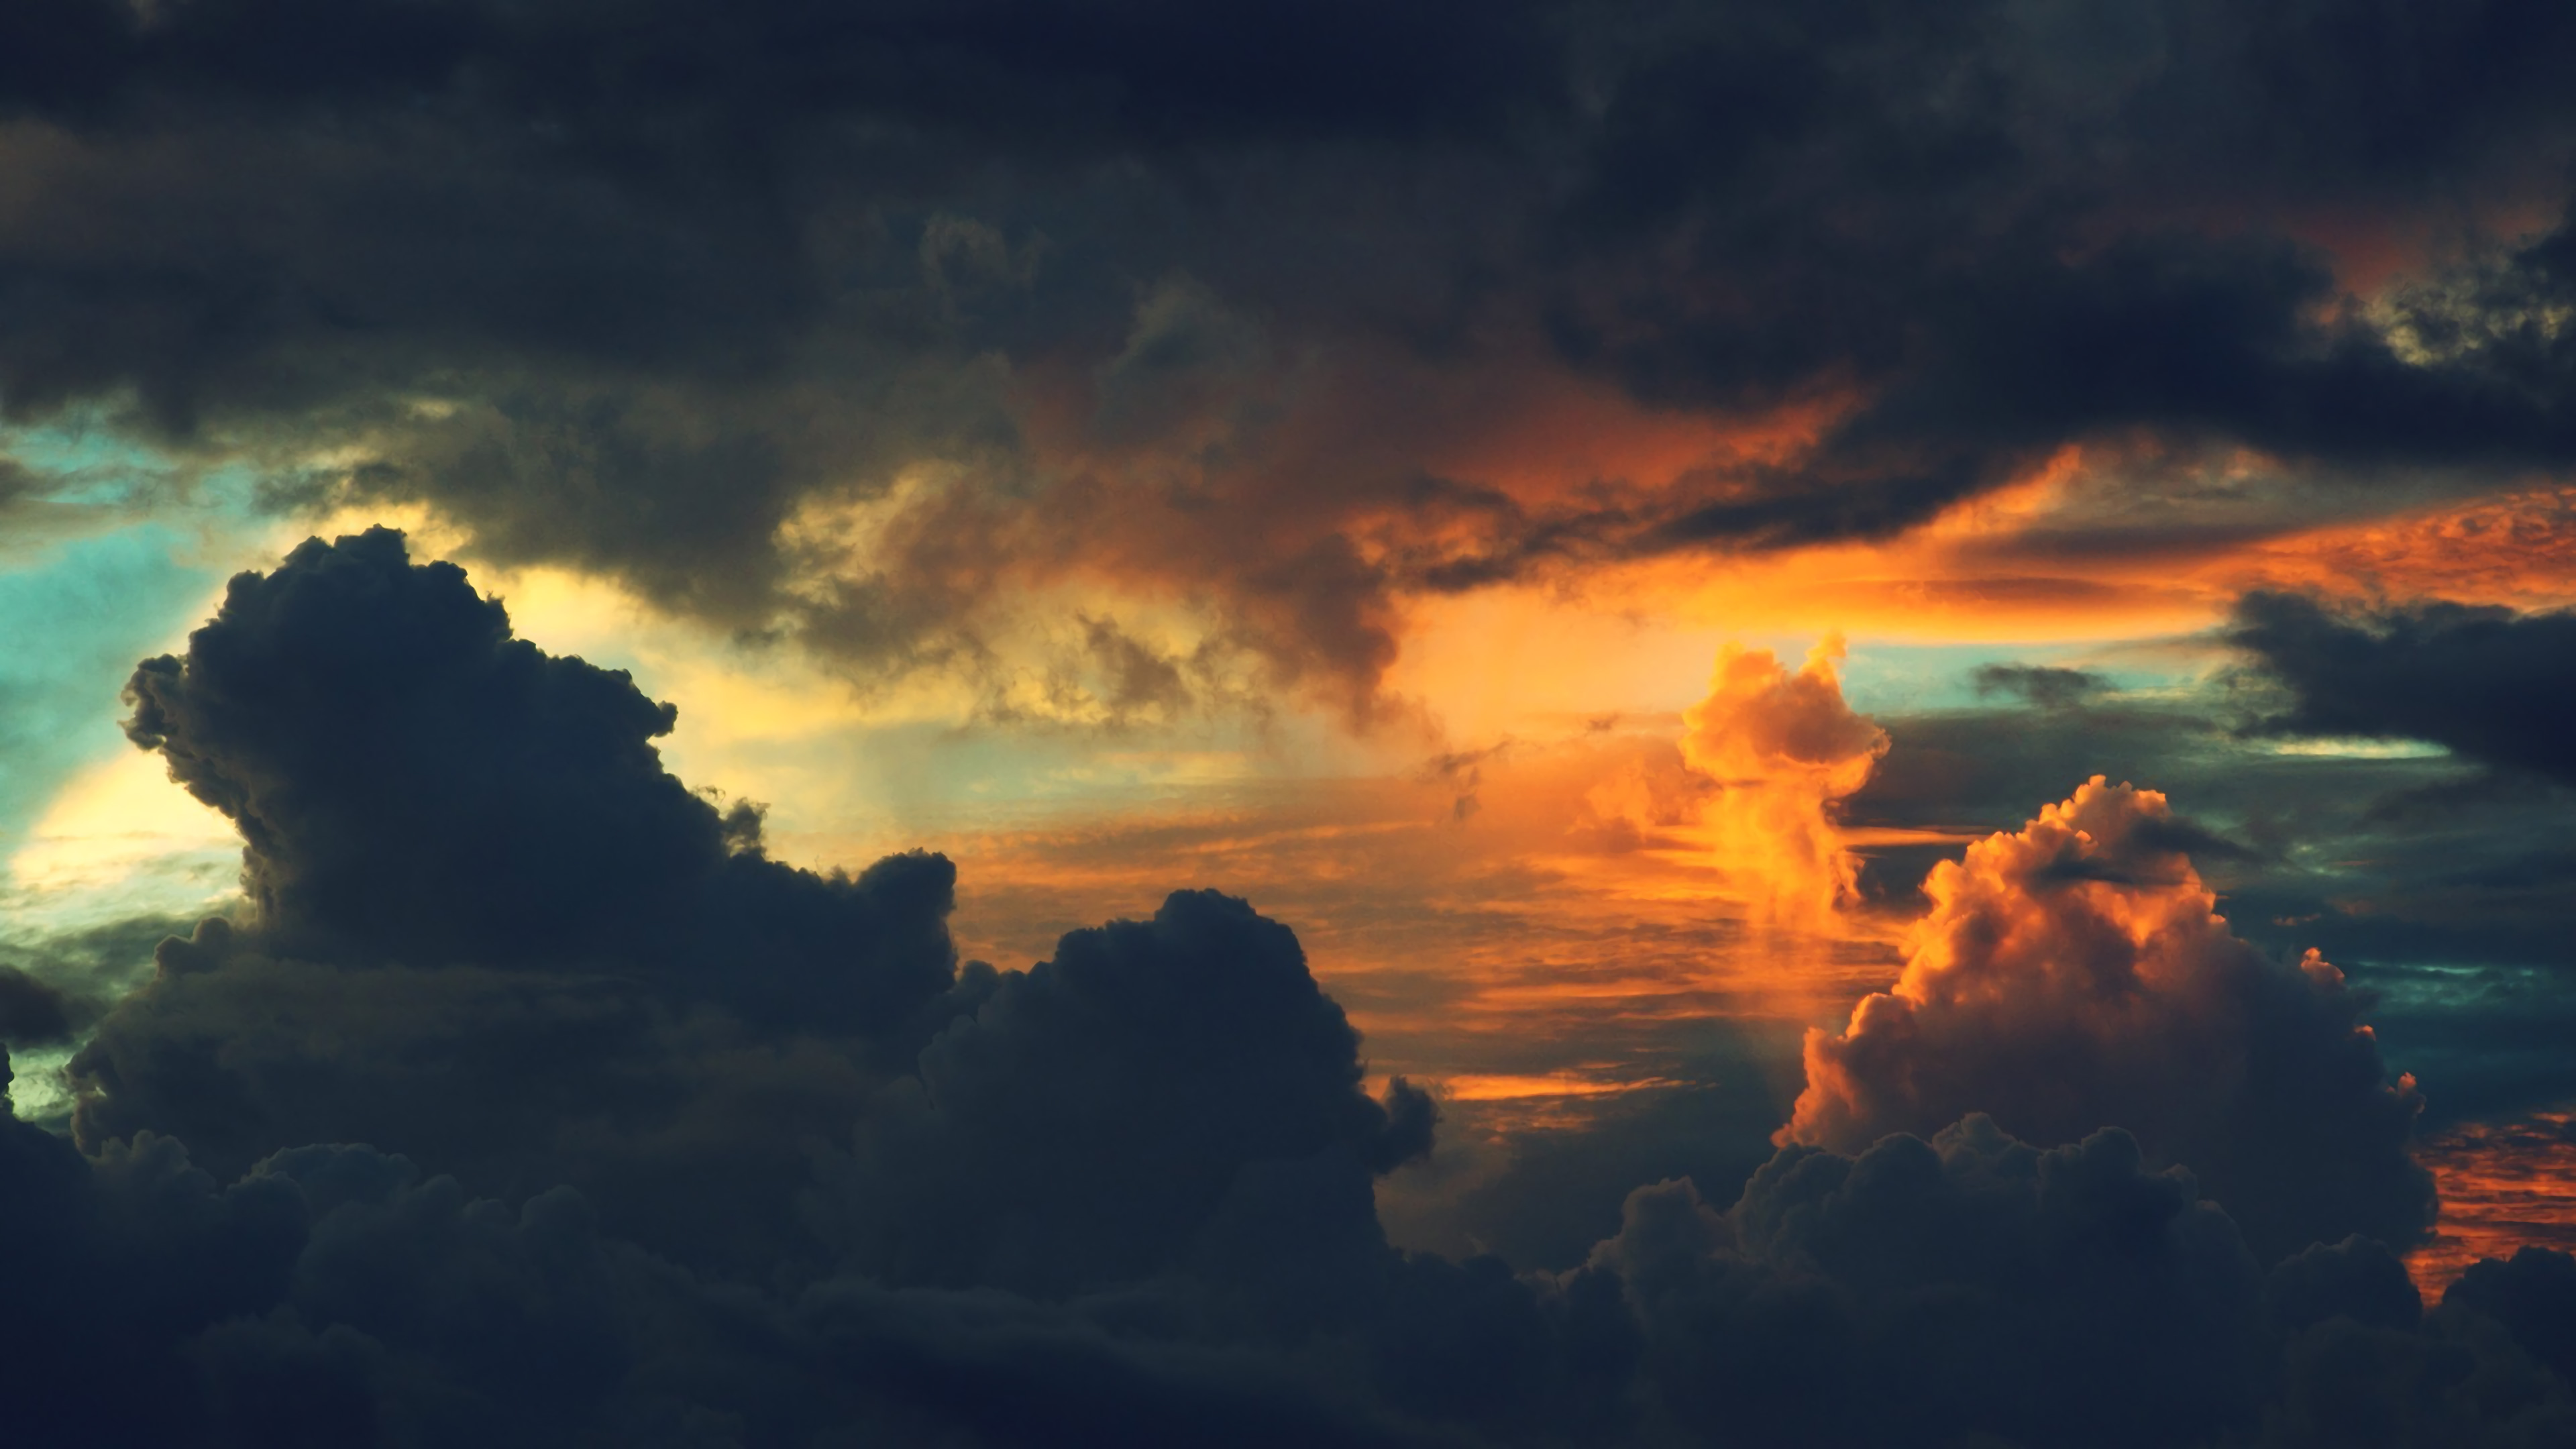 Sky Clouds 4k, HD Nature, 4k Wallpapers, Images ...